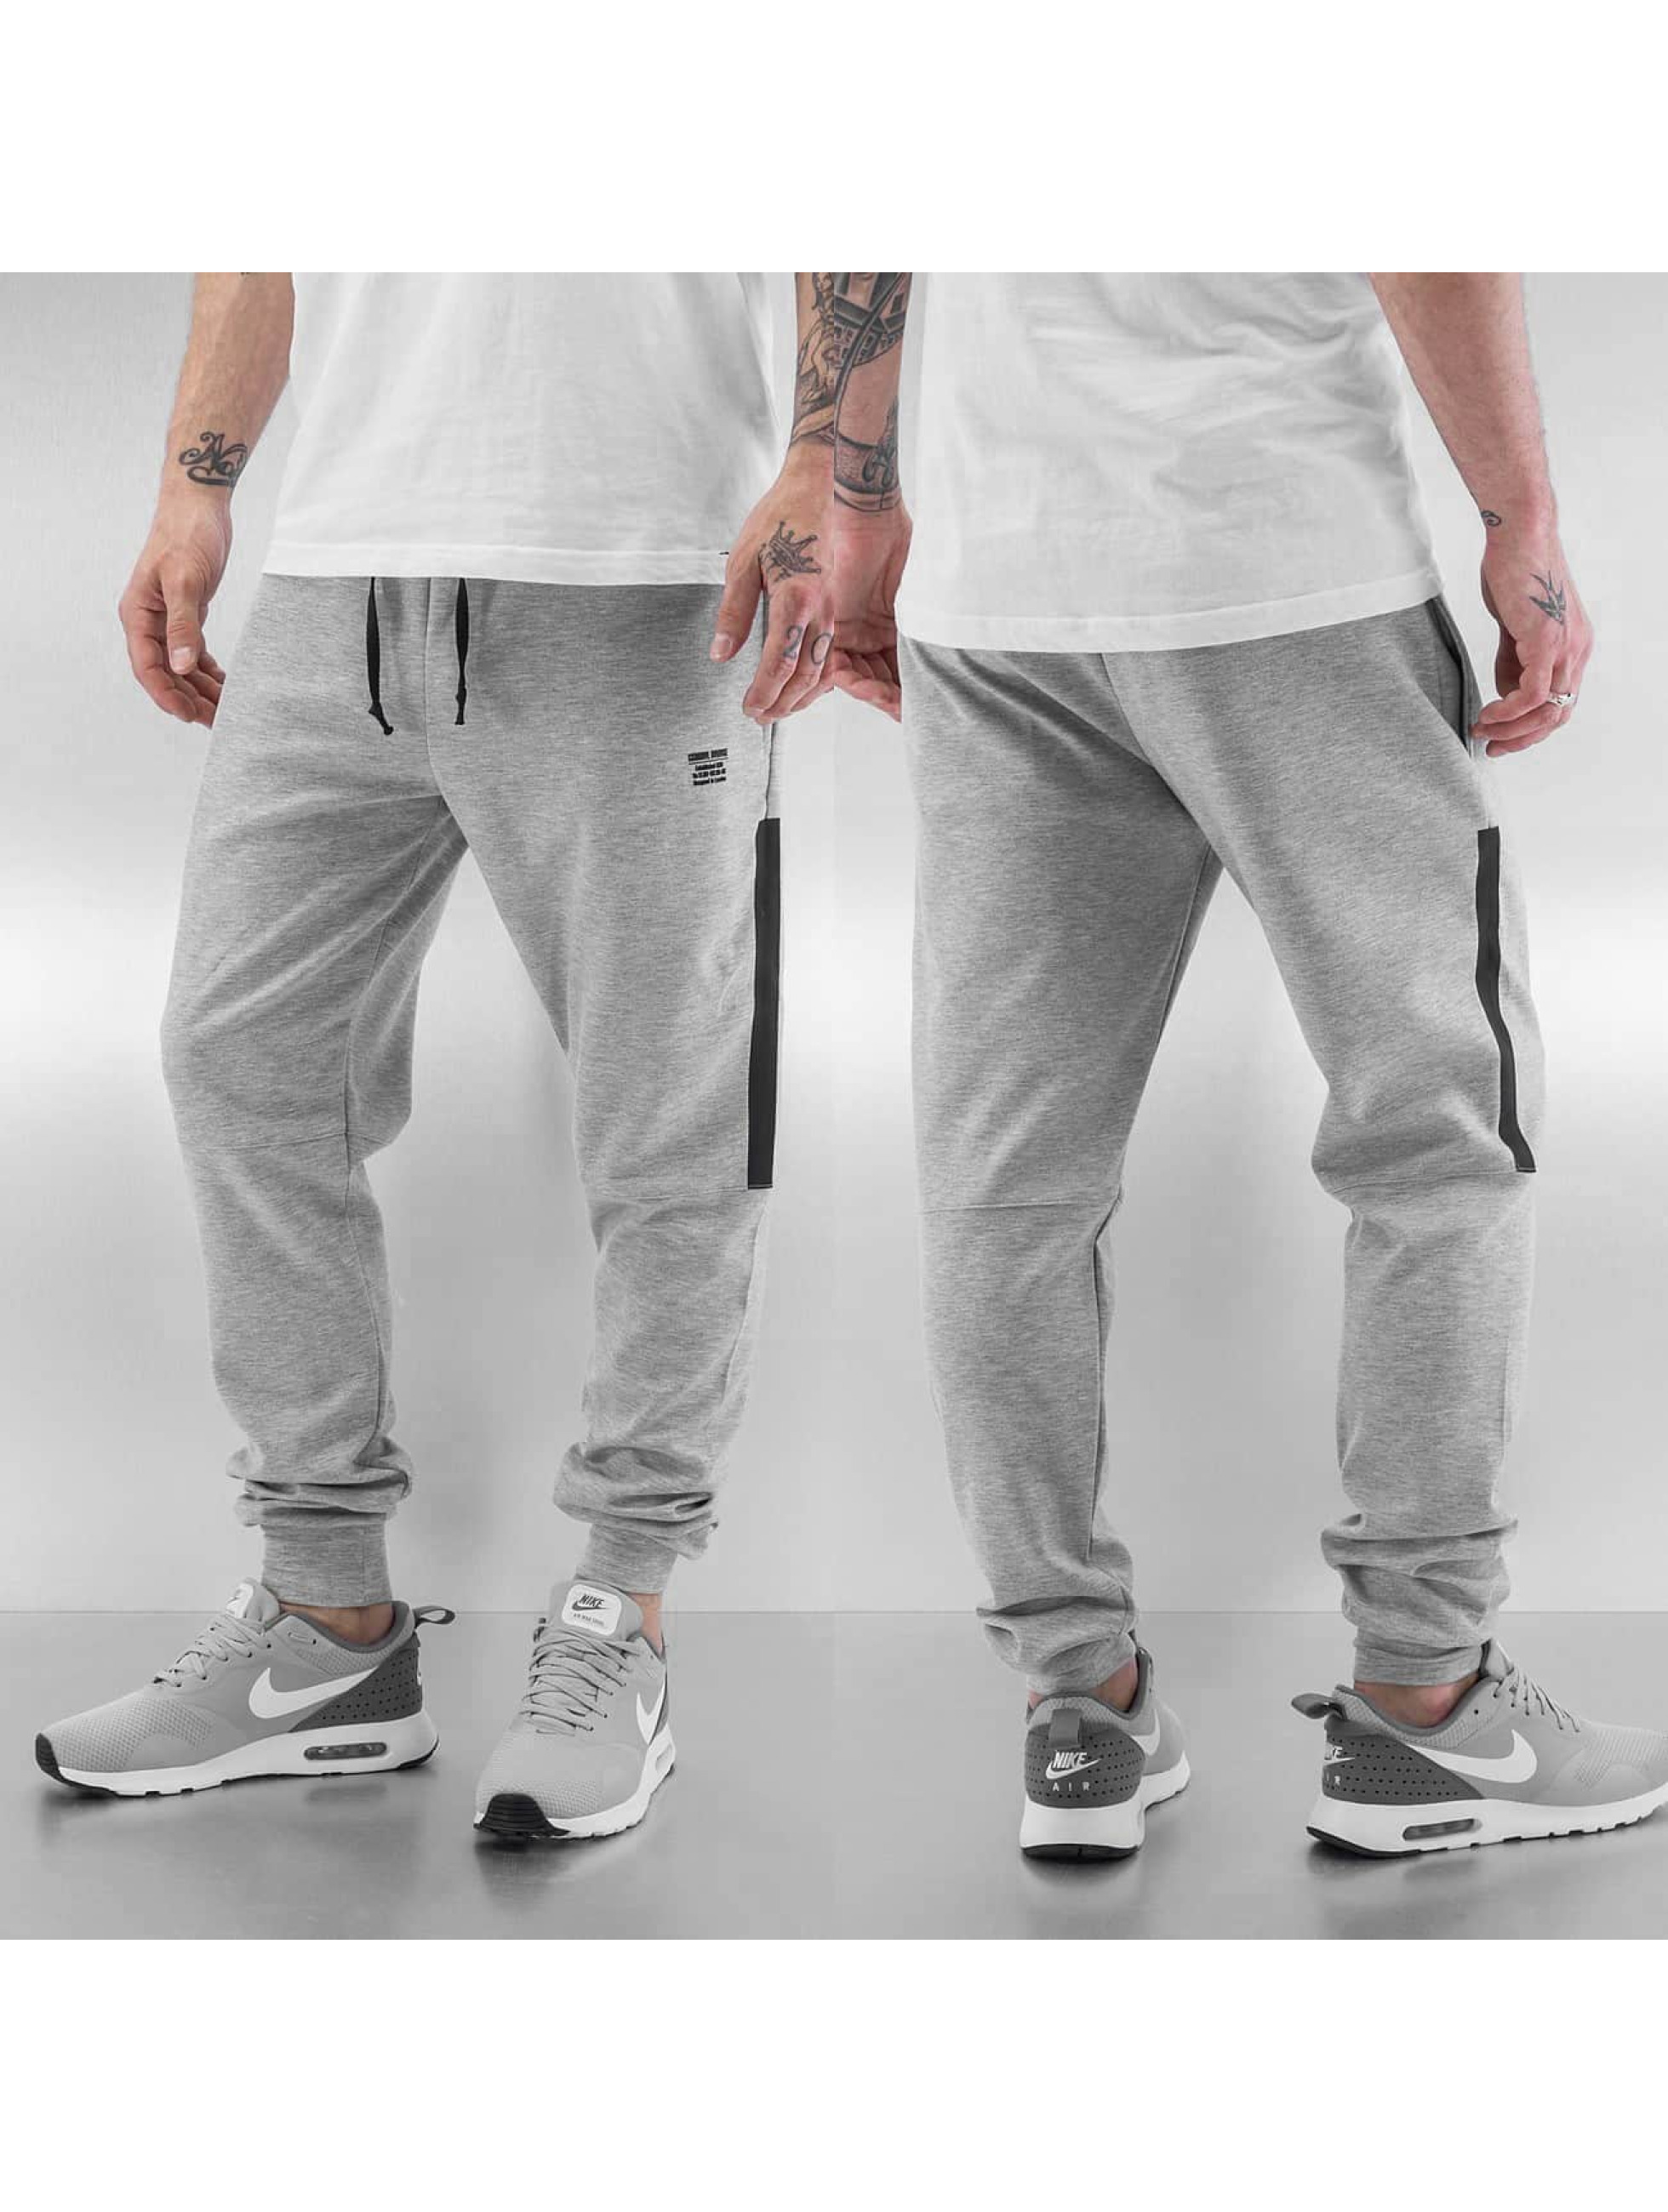 Criminal Damage Stand Sweatpants Grey Black